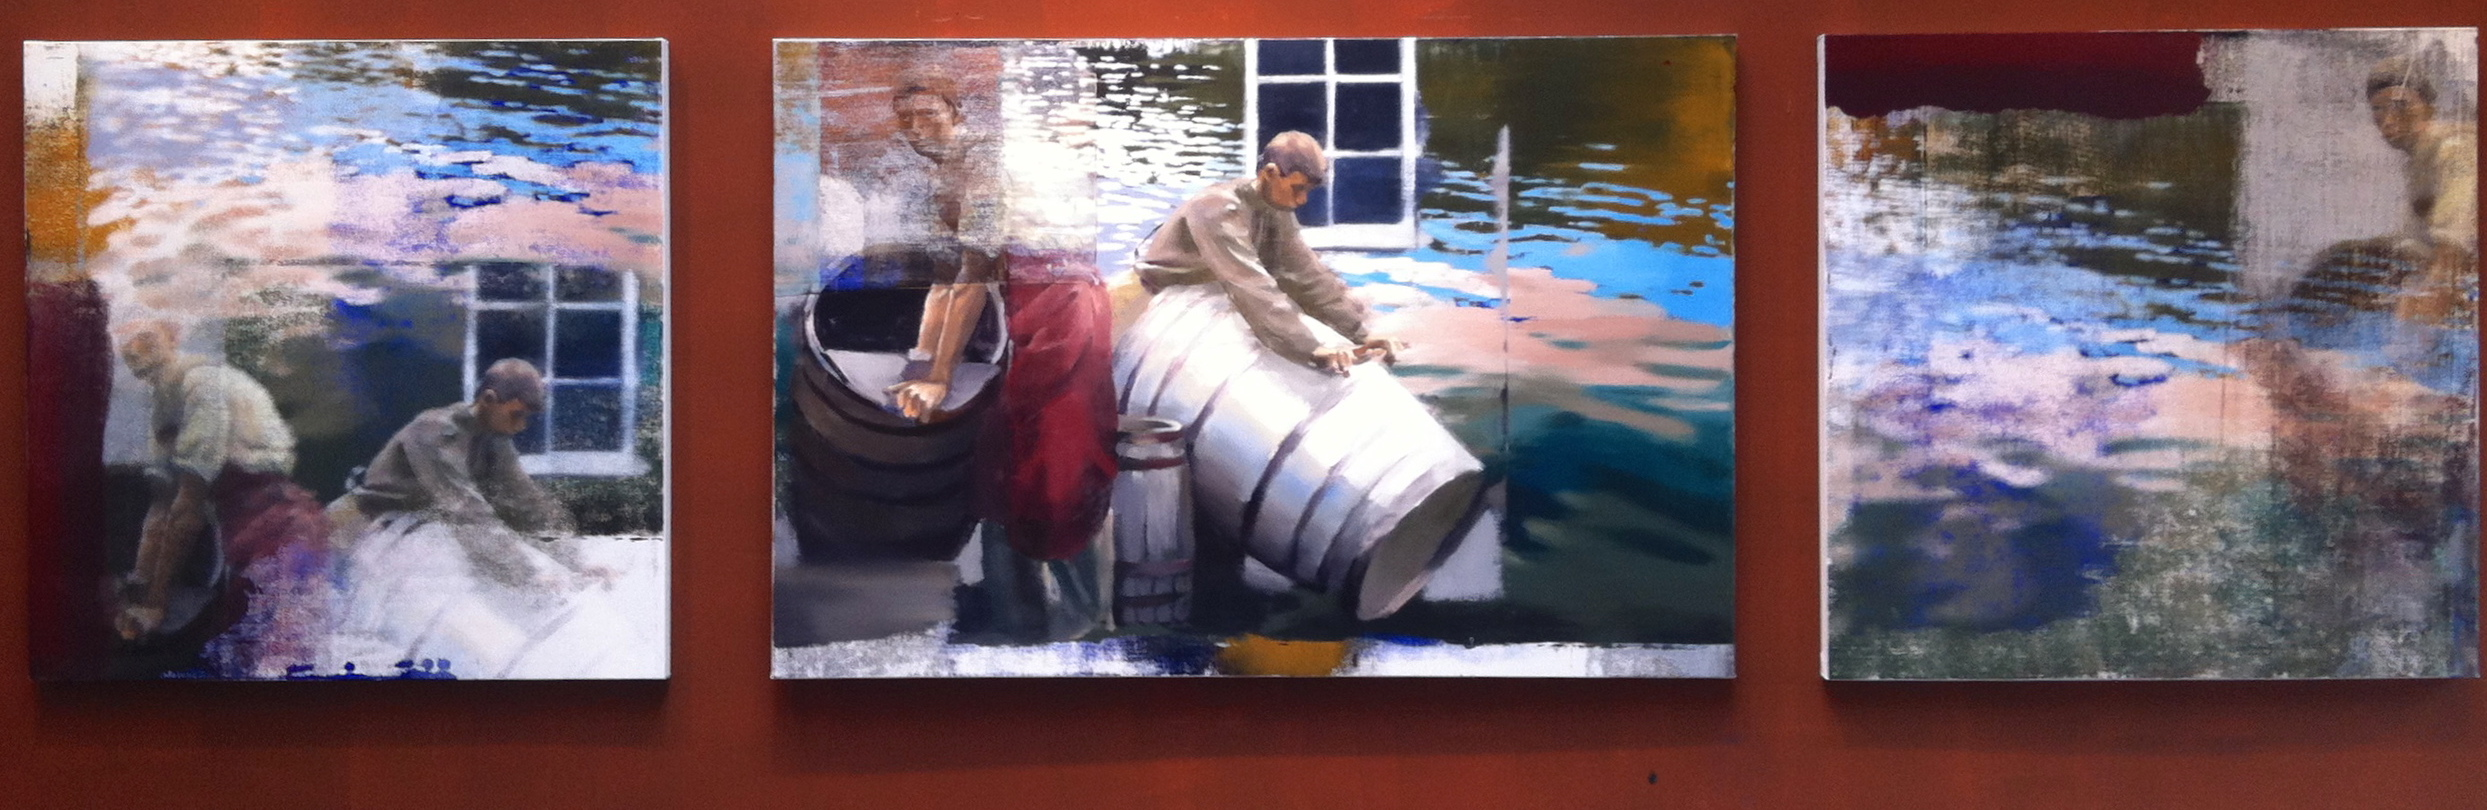 "3. Moving the Barrels, Oil on Linen on Panel, 2013, 48"" X 168"""